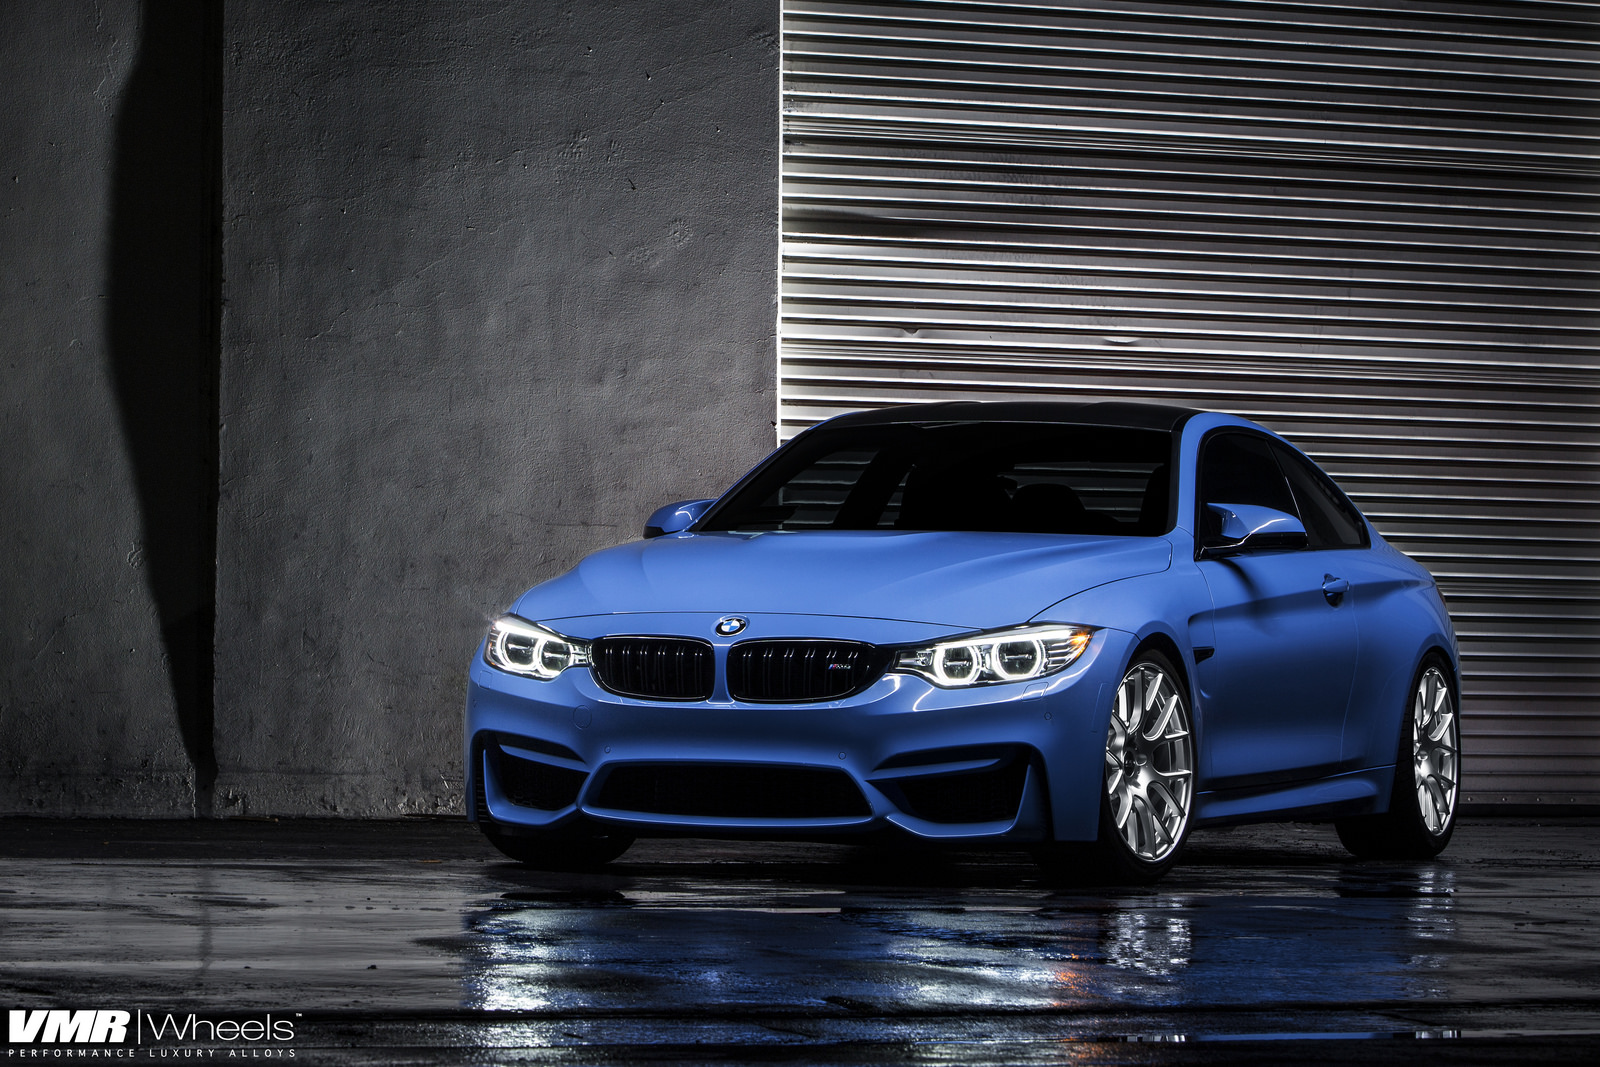 Yas Marina Bmw F82 M4 Blue On Vmr Wheels